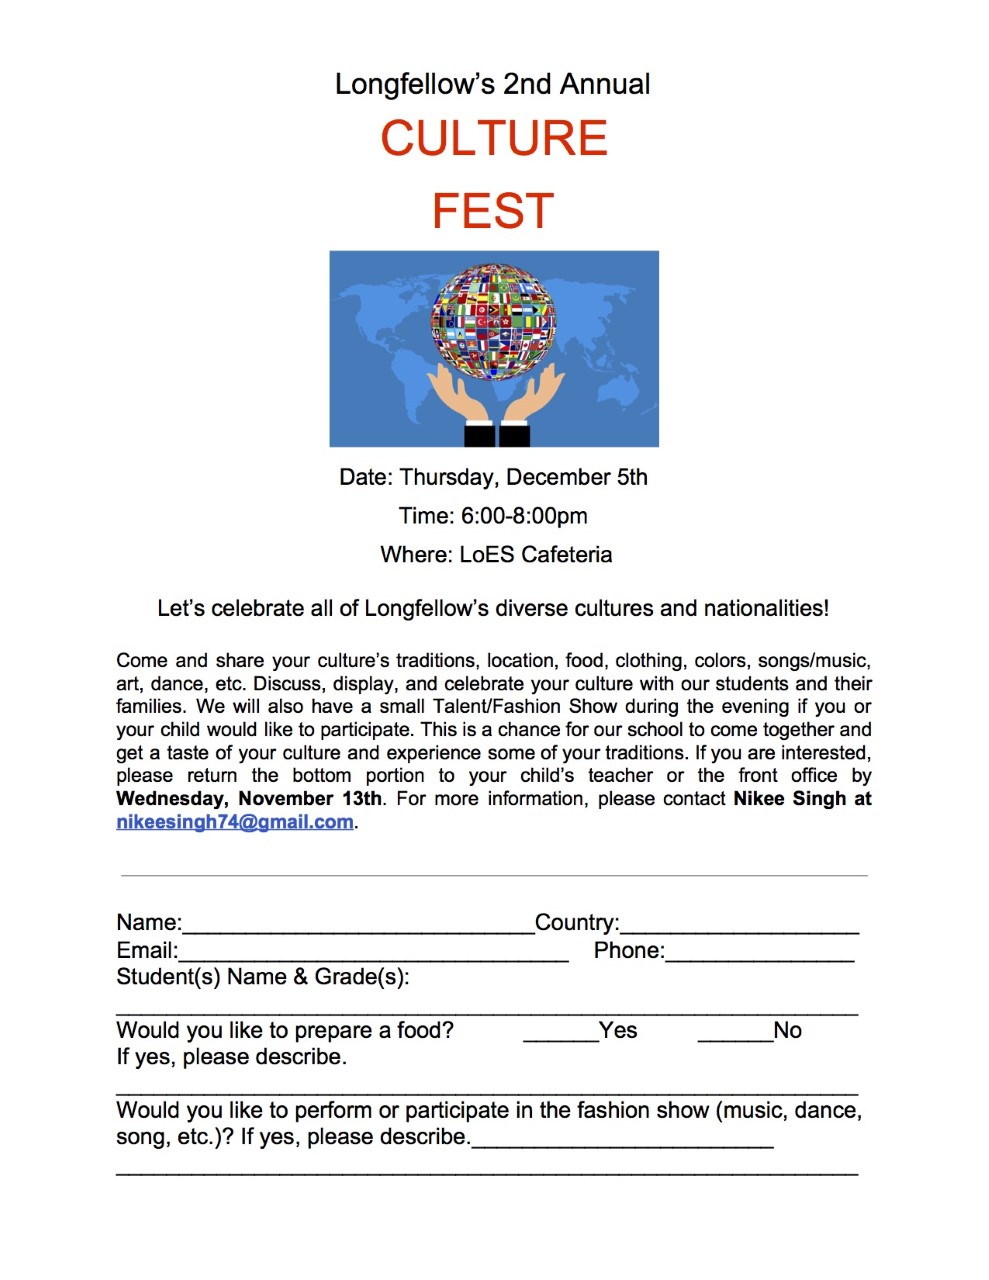 CultureFest is on Thursday, December 6th from 6:00 to 8:00 in the cafeteria.